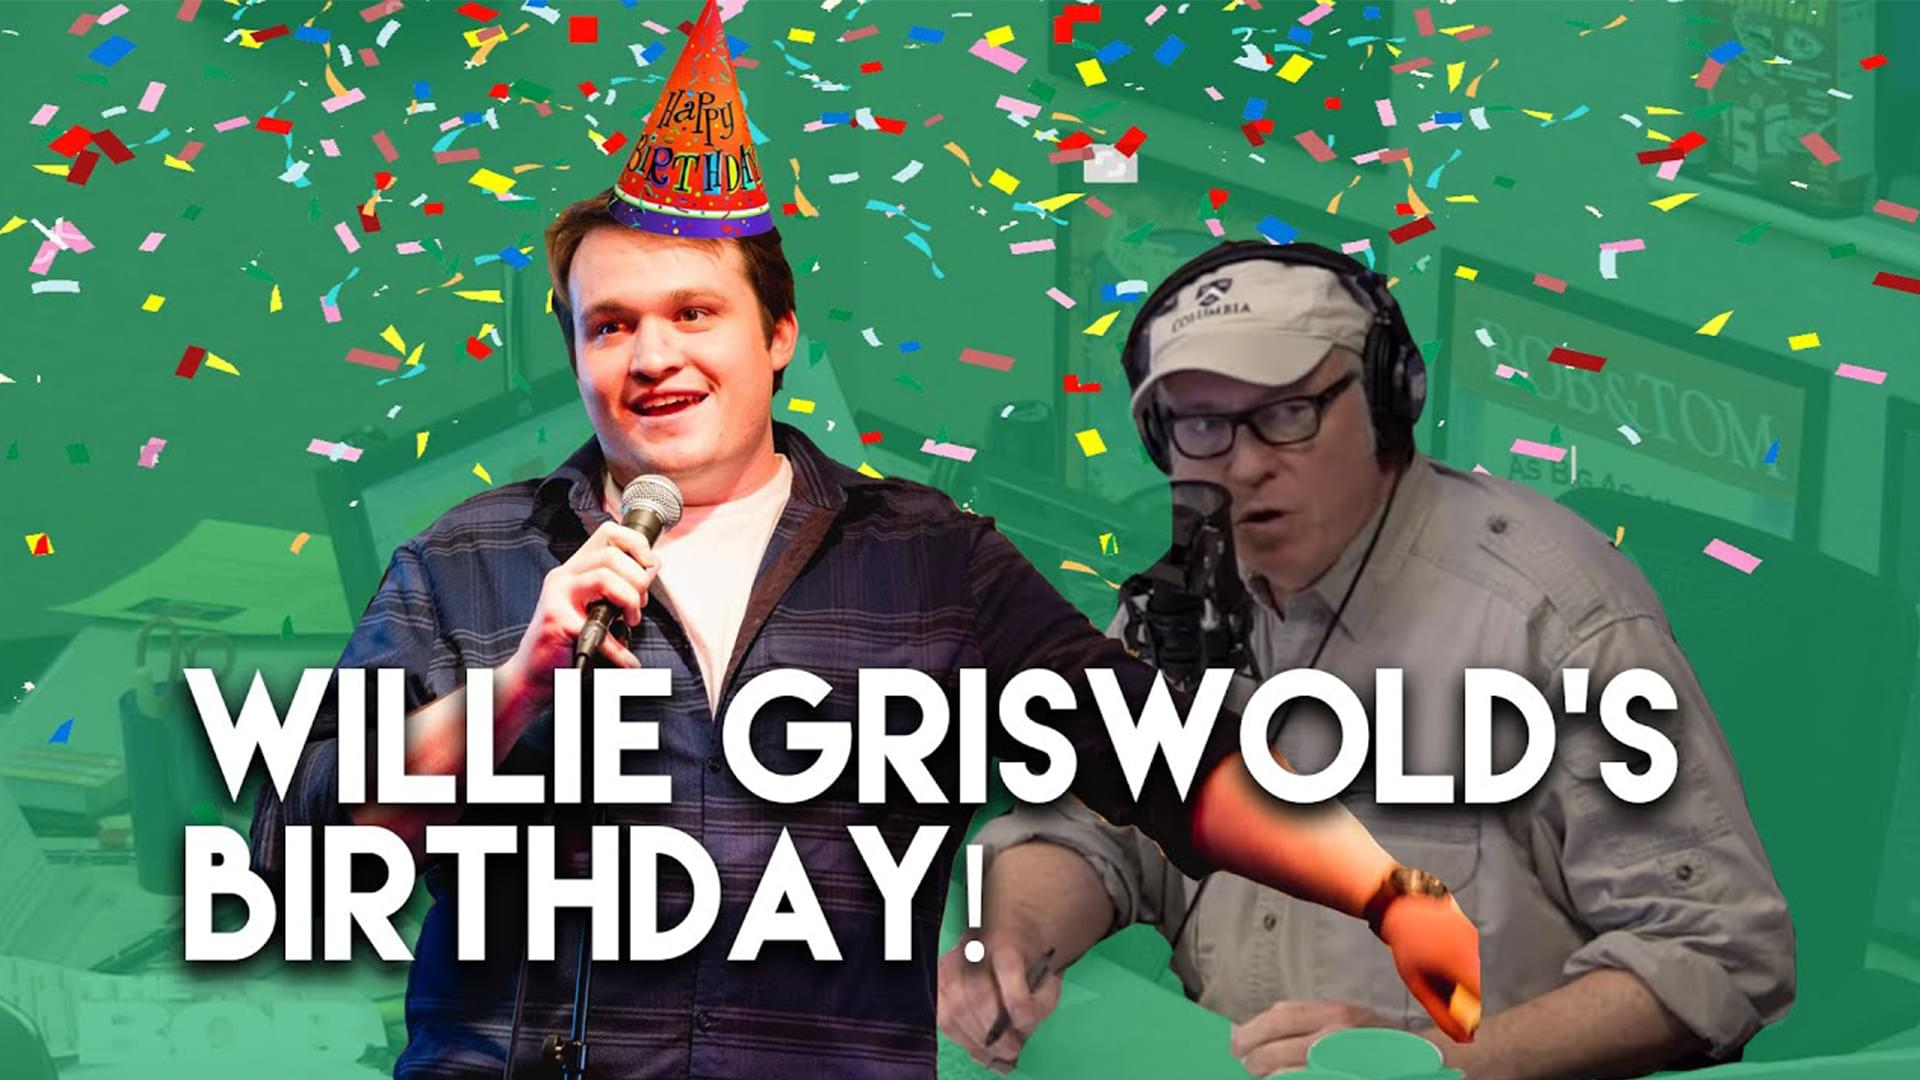 It's Willie Griswold's Birthday!